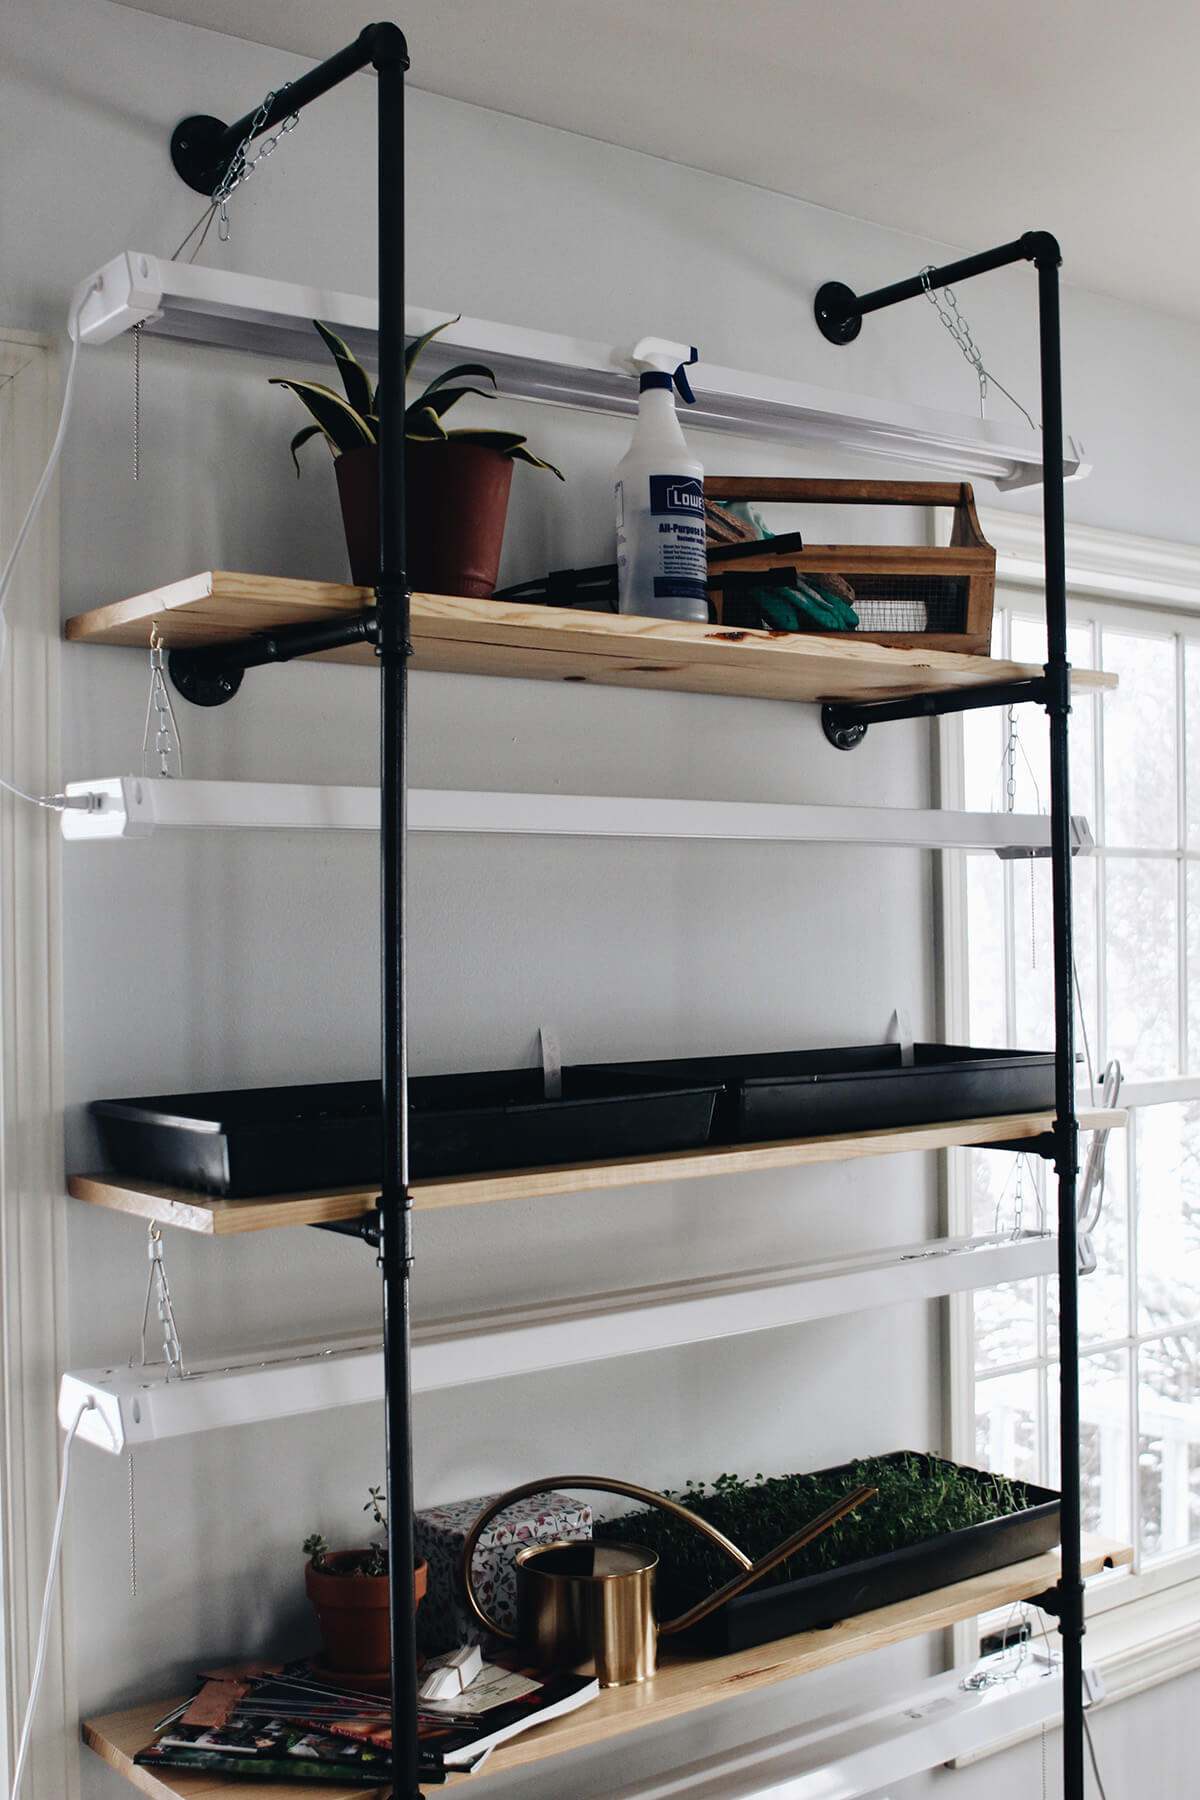 Indoor Garden on Shelves Made of Pipe and Wood